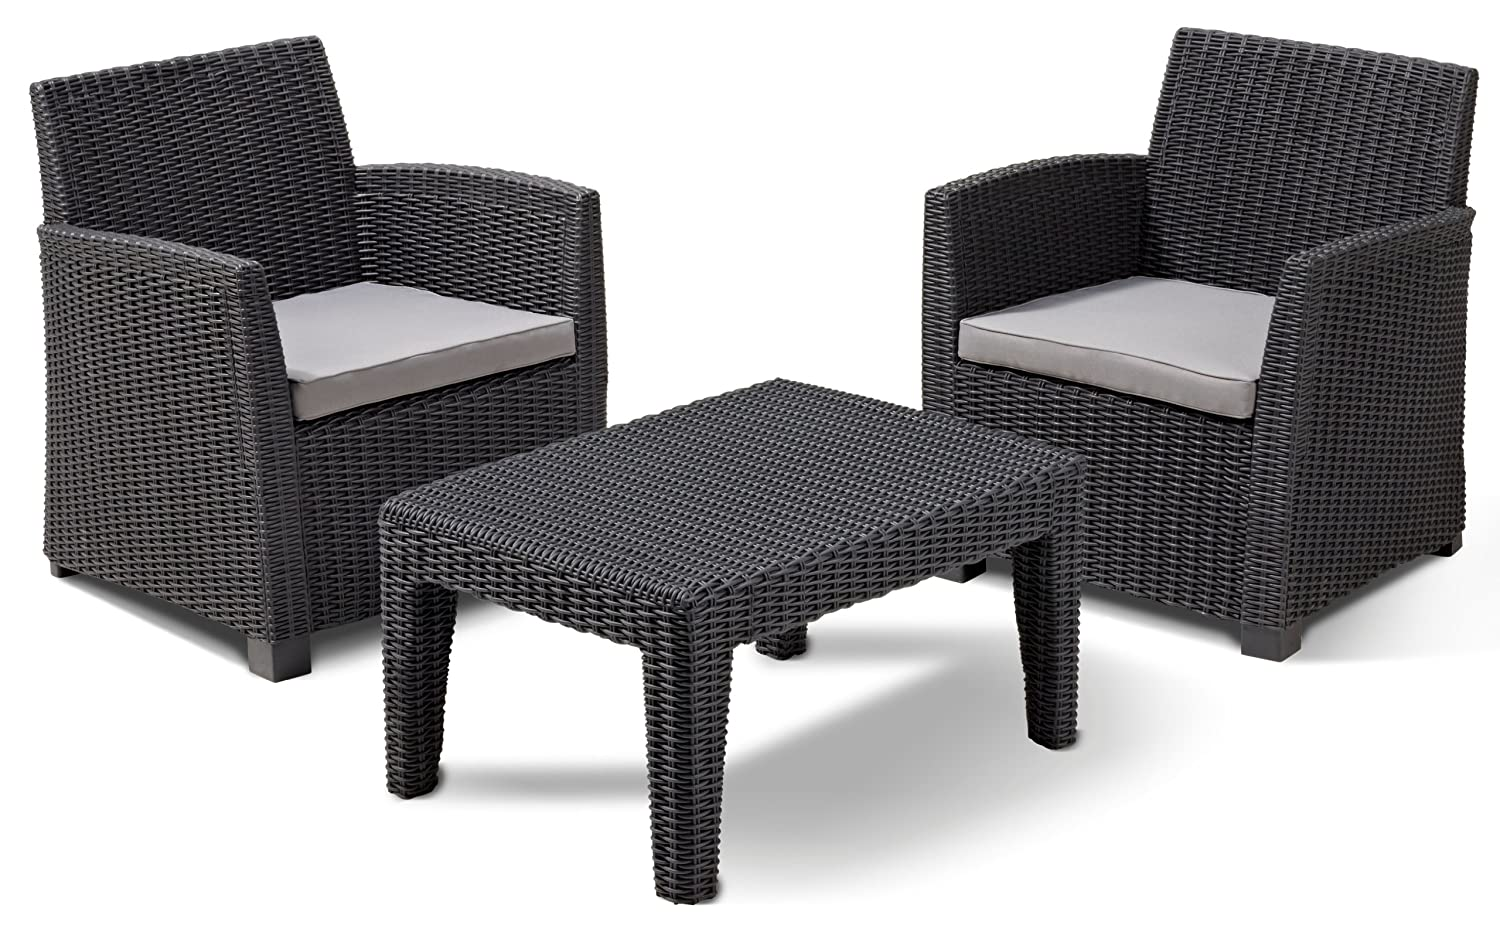 Allibert 212429 Lounge Set Corona Balcony  (2 Sessel, 1 Tisch), Rattanoptik, Kunststoff, graphit